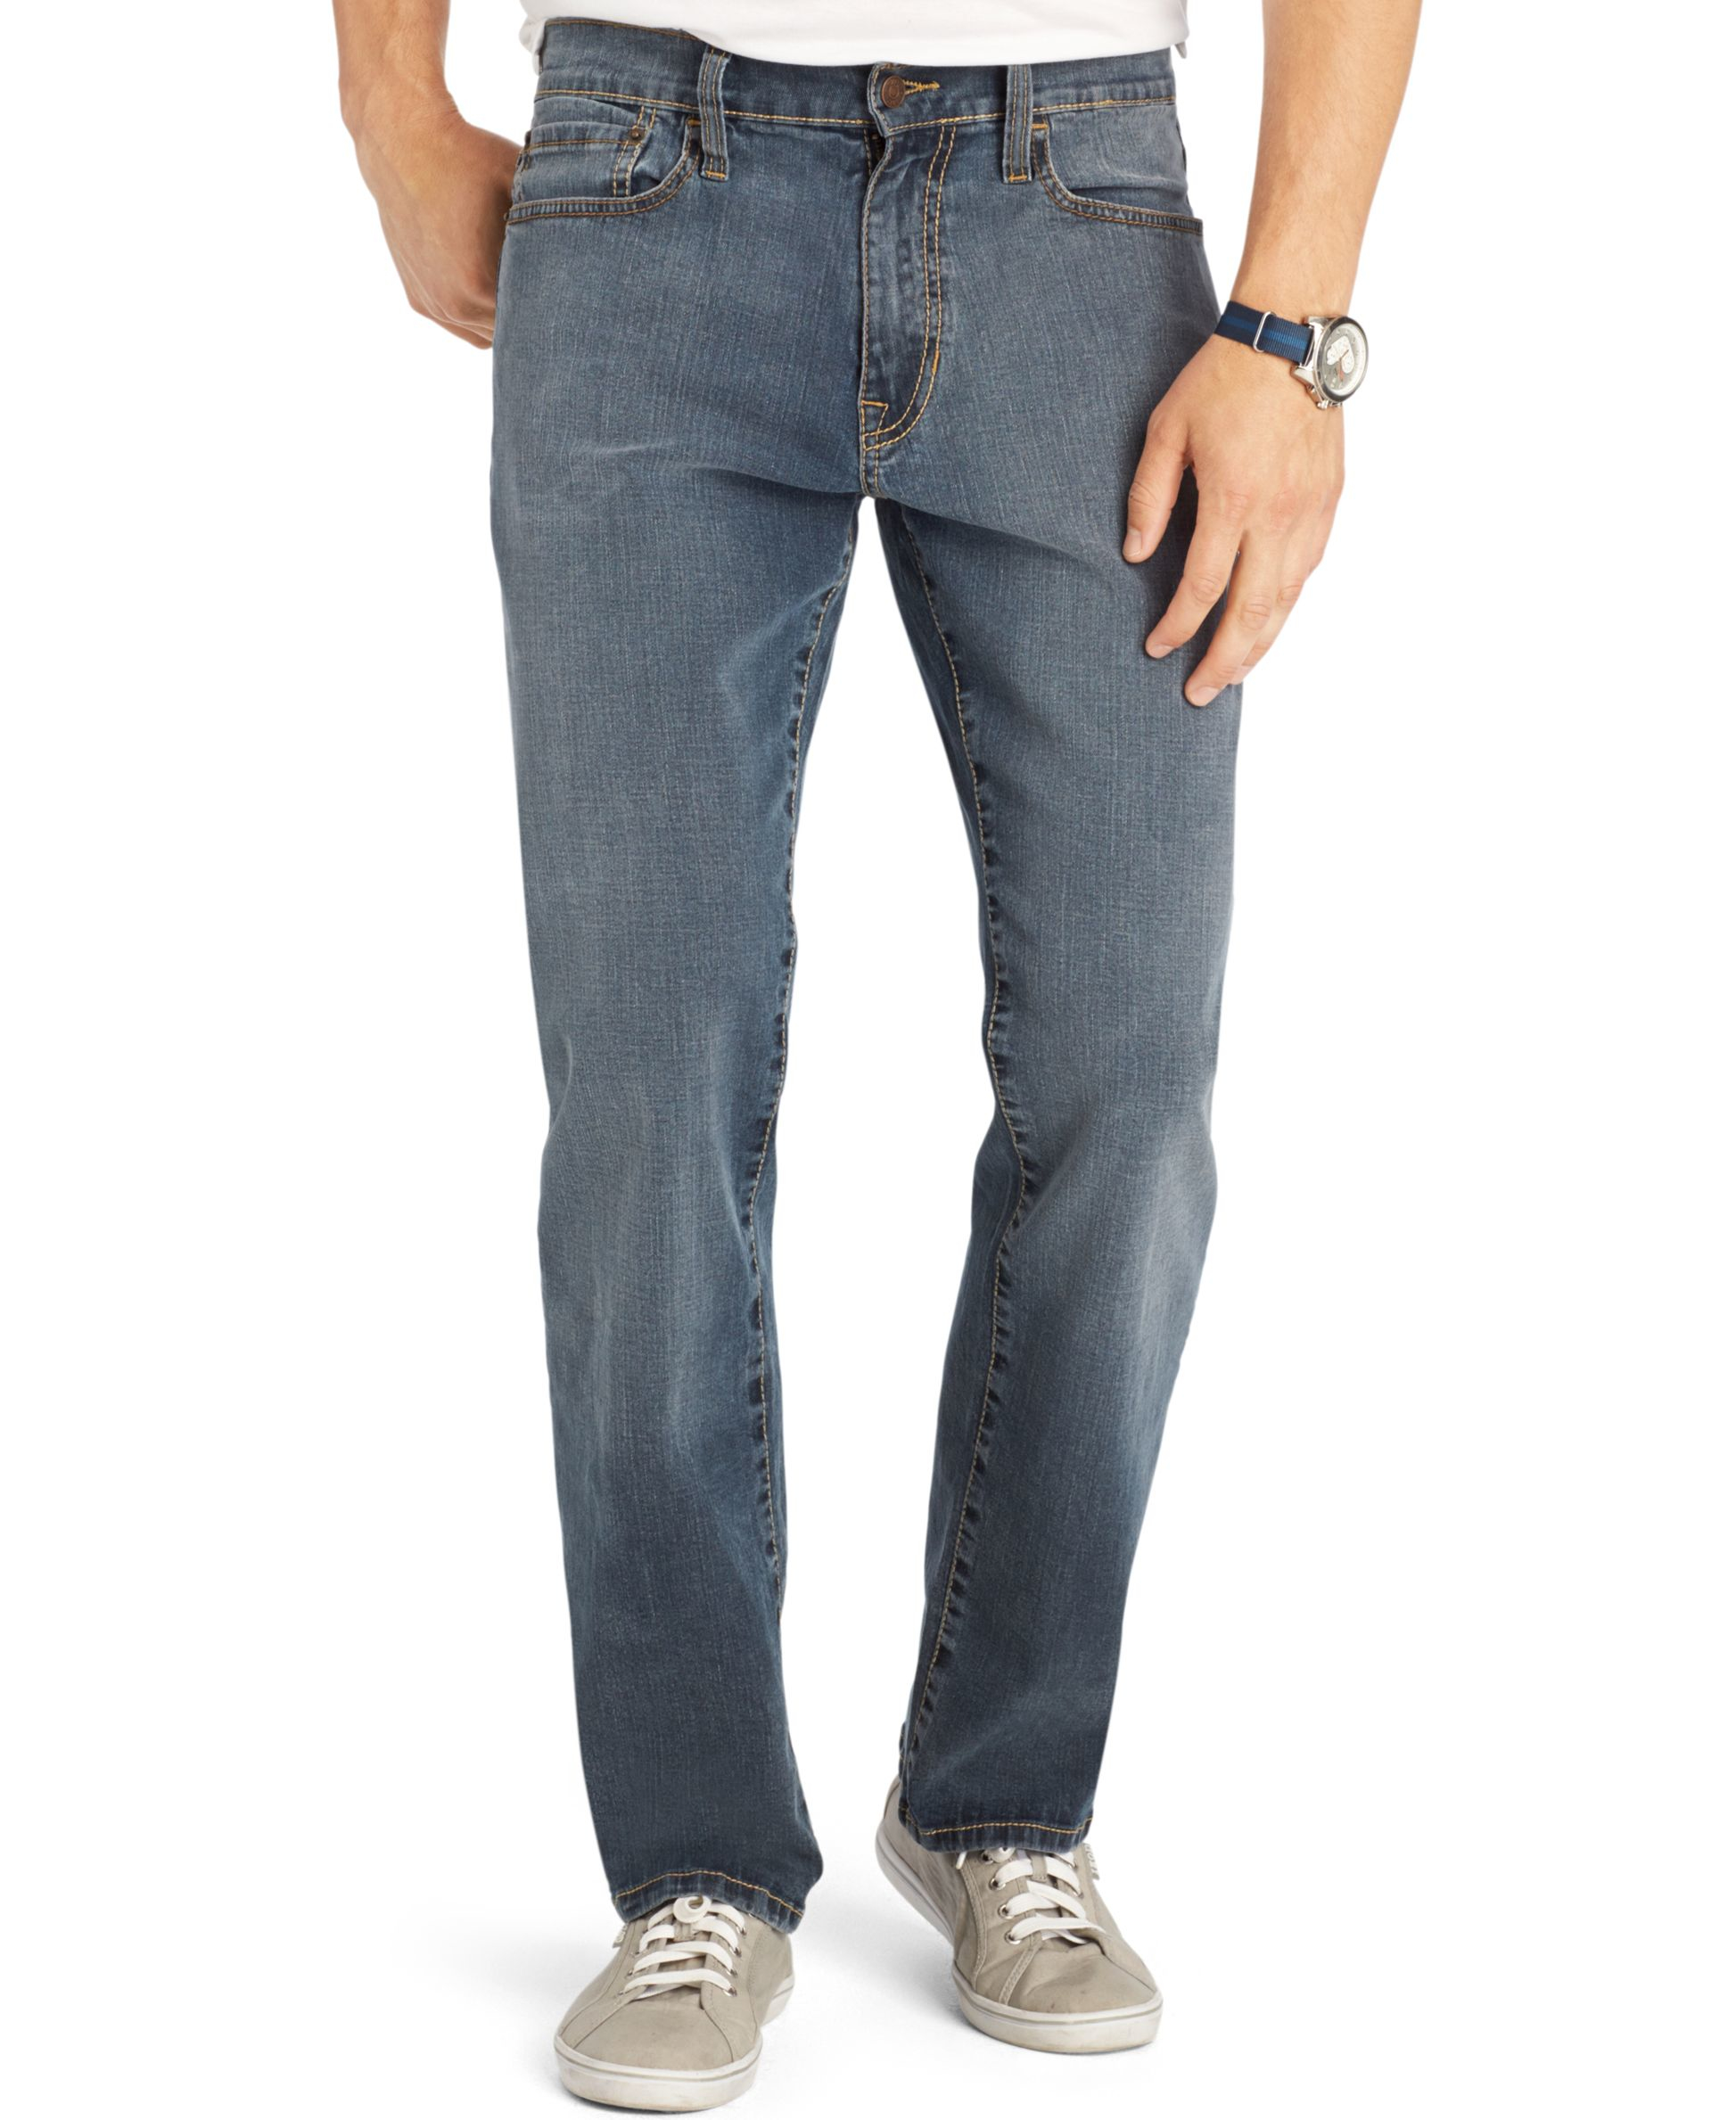 Shop for mens jeans 44x34 online at Target. Free shipping on purchases over $35 and save 5% every day with your Target REDcard.